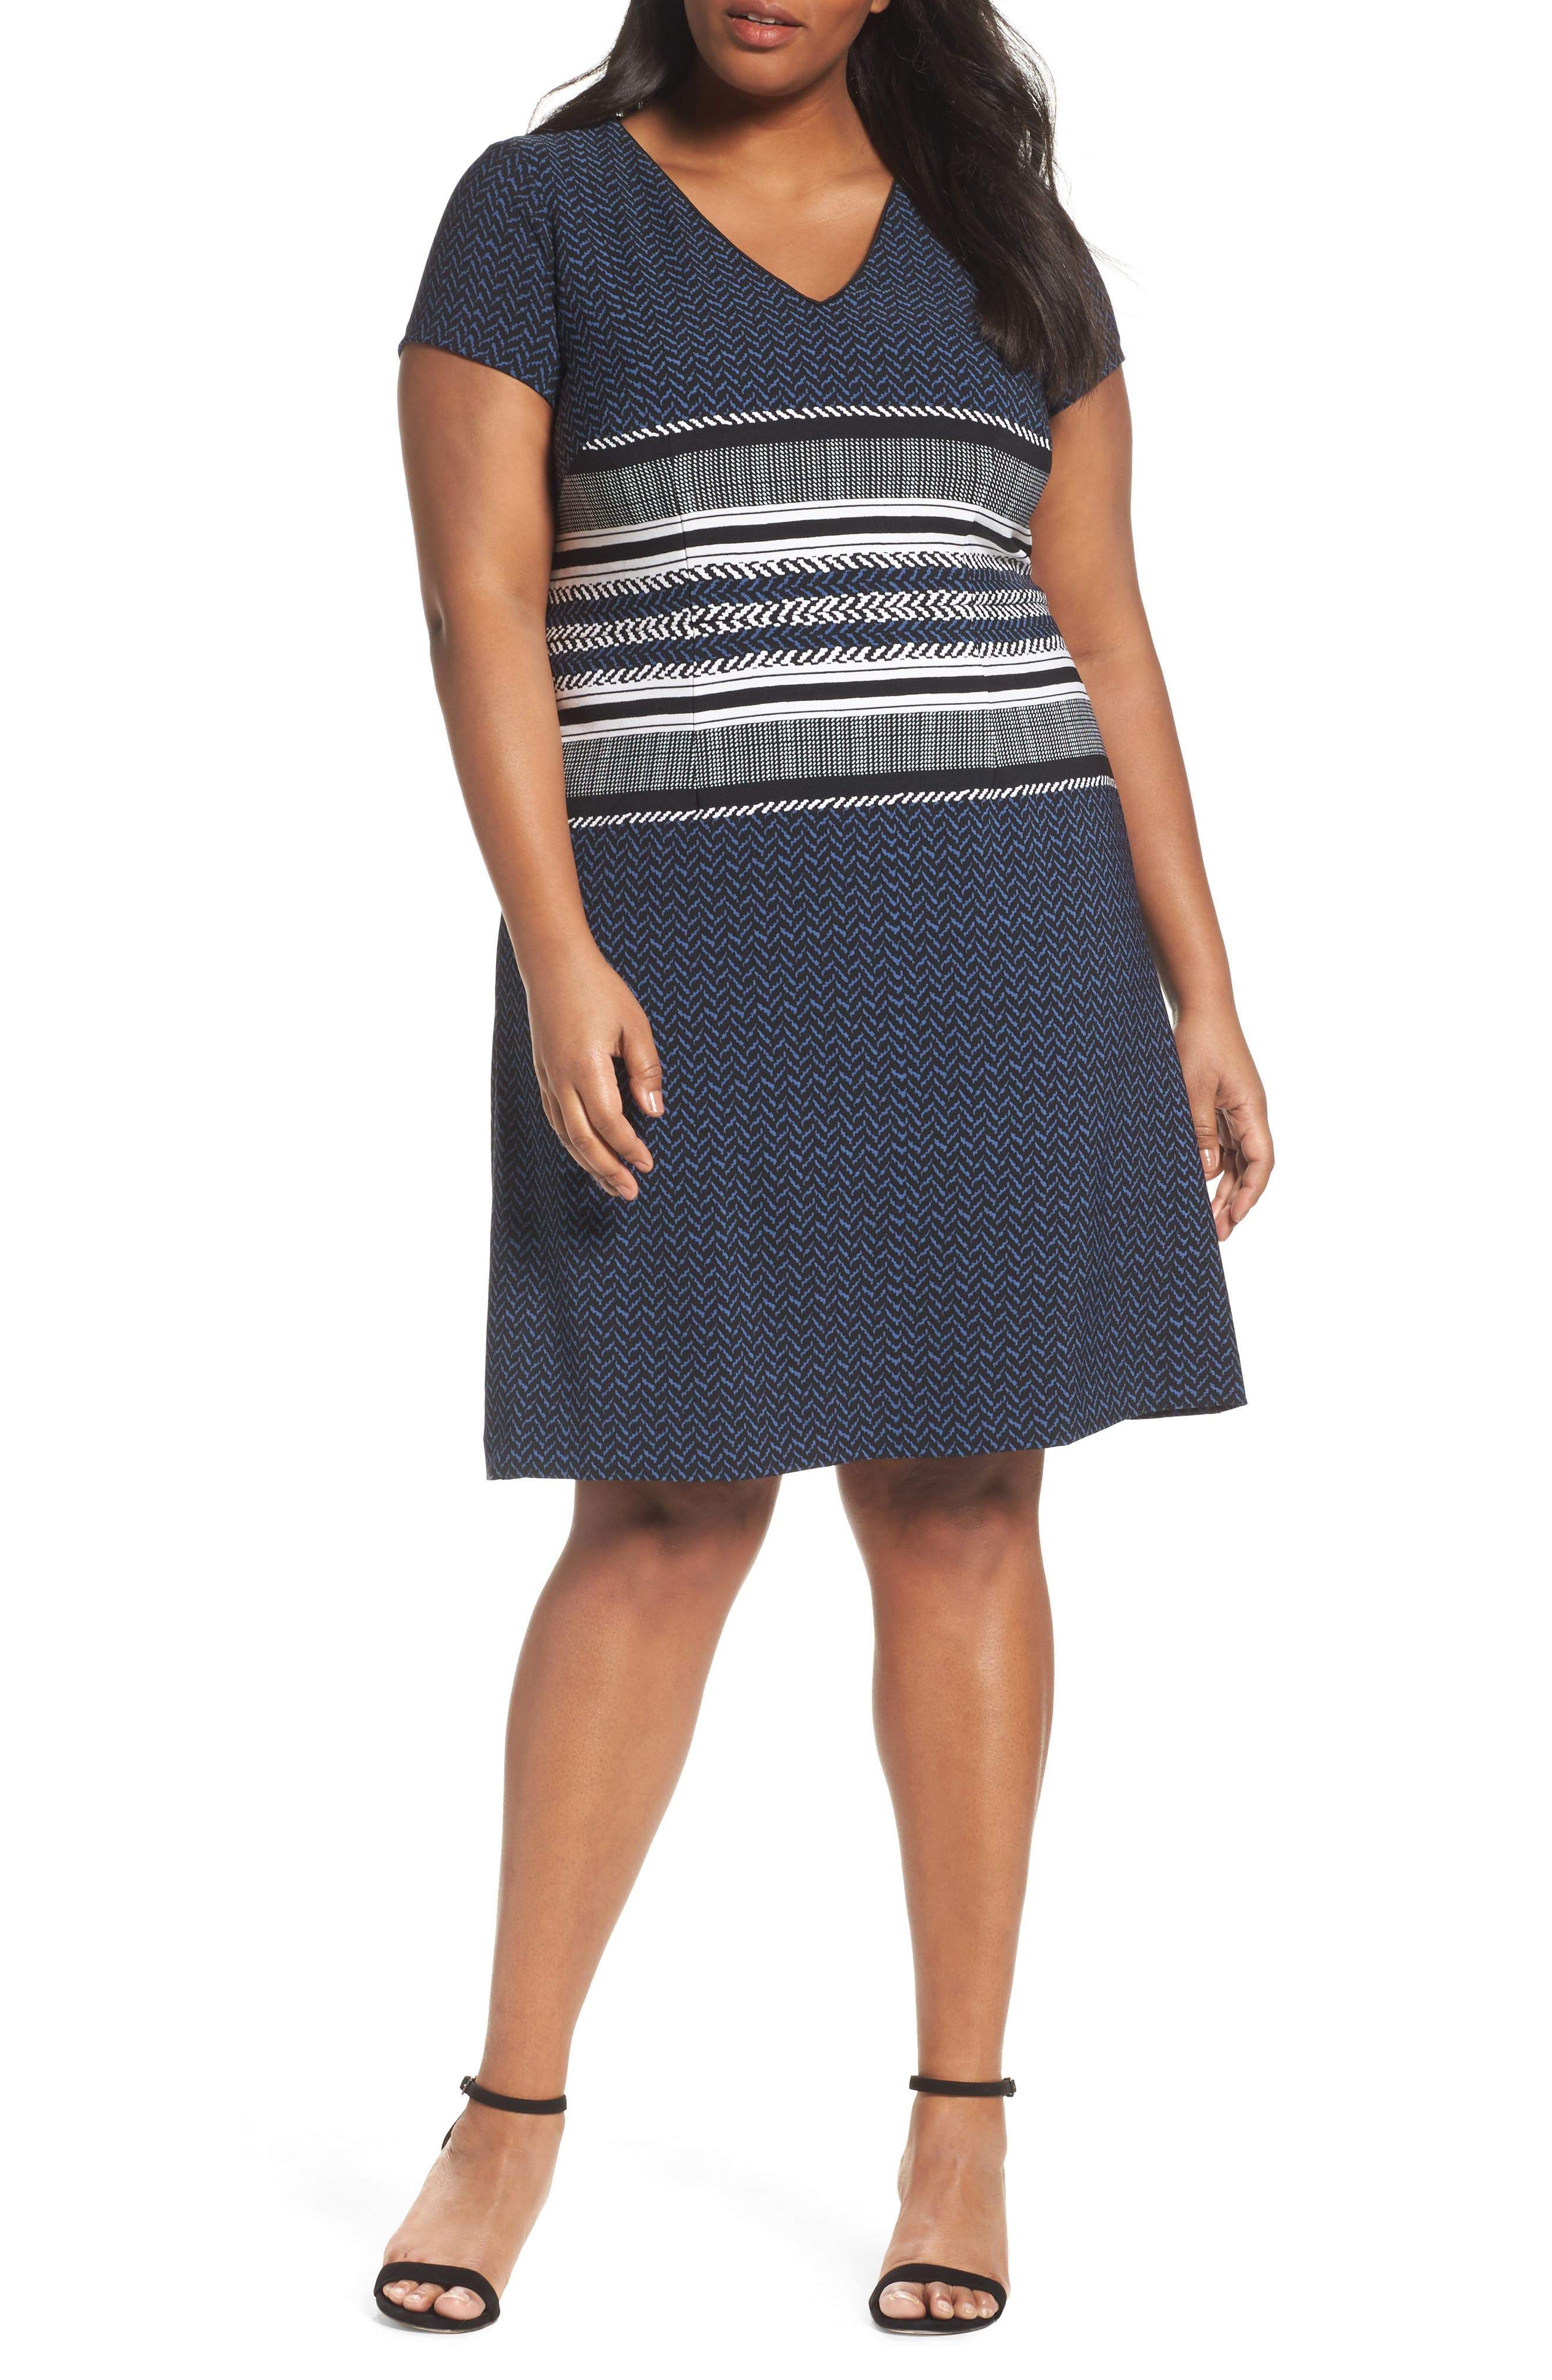 Alternate Image 1 Selected - Adrianna Papell Herringbone Print Sheath Dress (Plus Size)